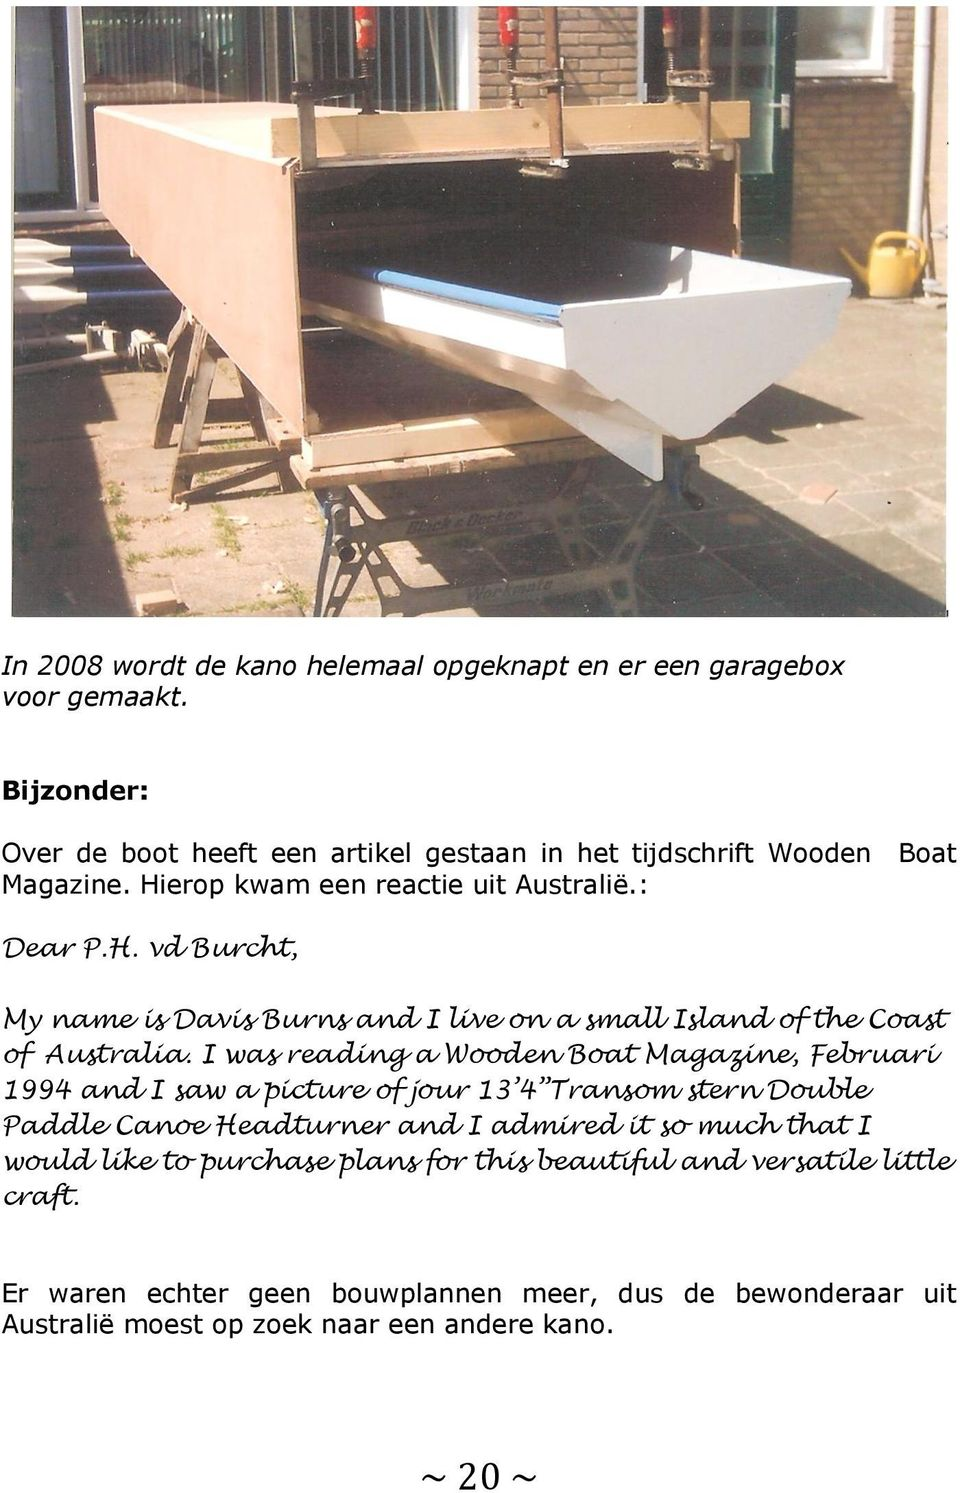 I was reading a Wooden Boat Magazine, Februari 1994 and I saw a picture of jour 13 4 Transom stern Double Paddle Canoe Headturner and I admired it so much that I